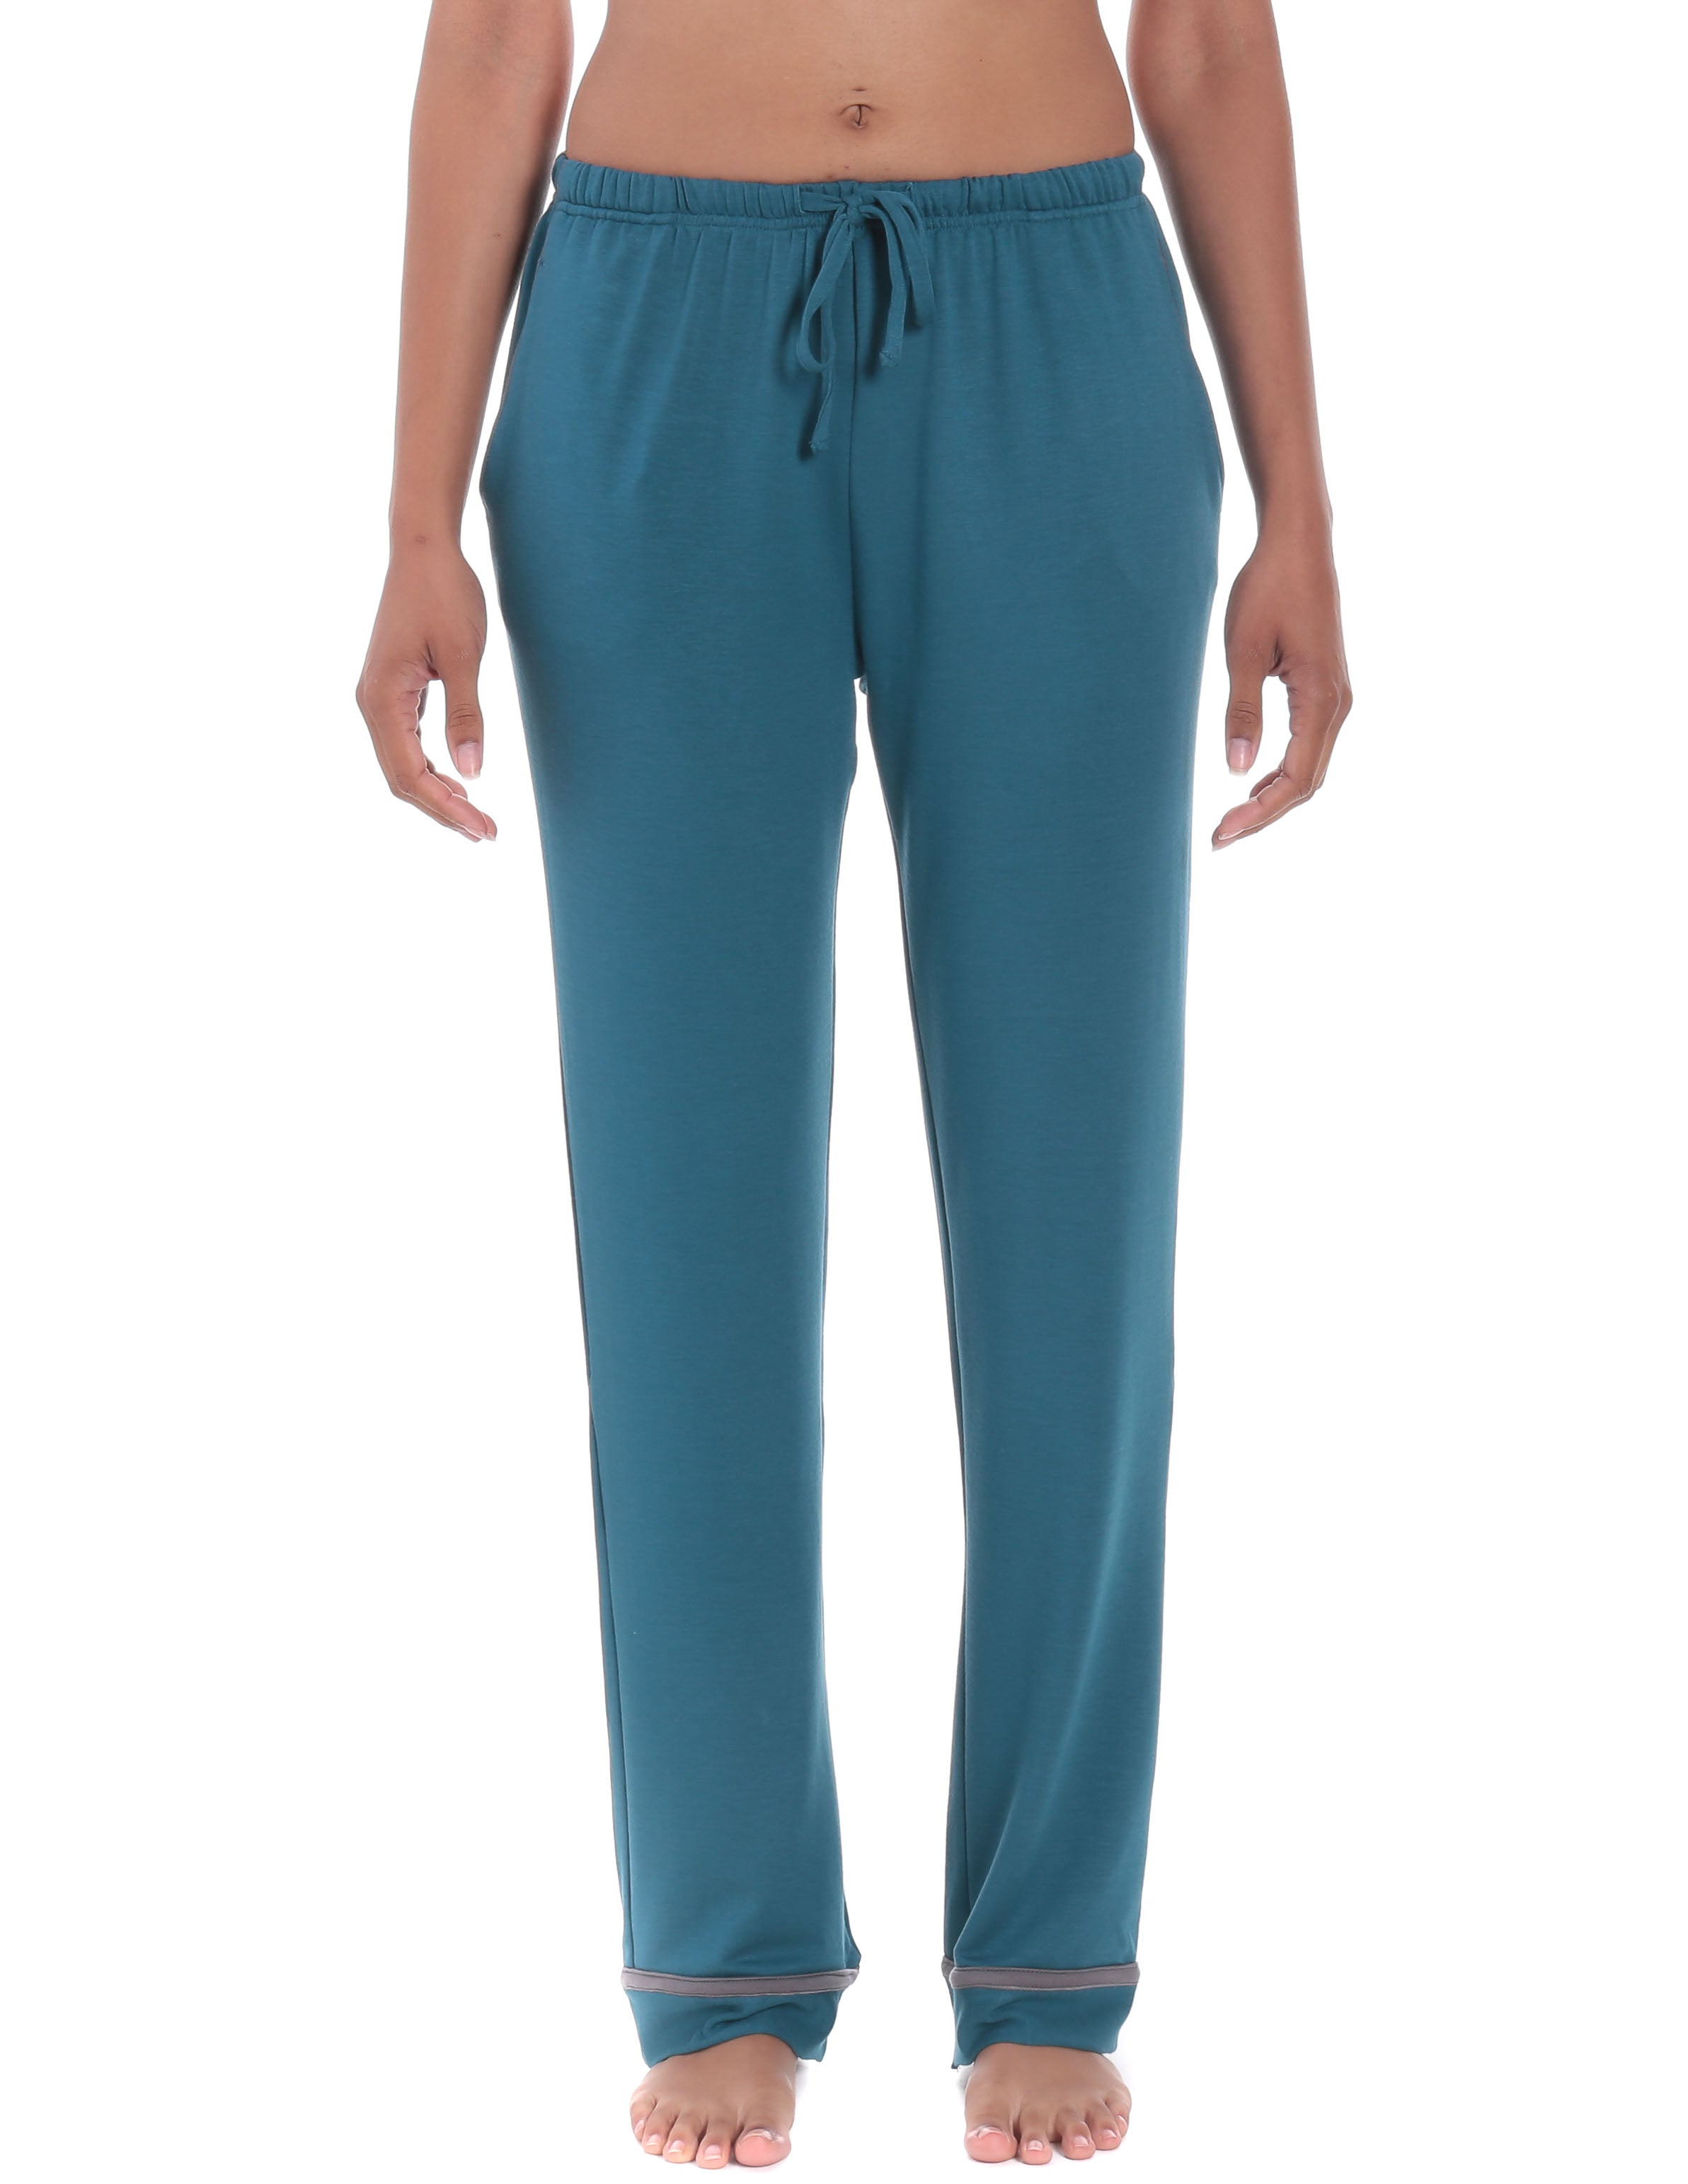 Women's Jersey Knit French Terry Lounge Pants